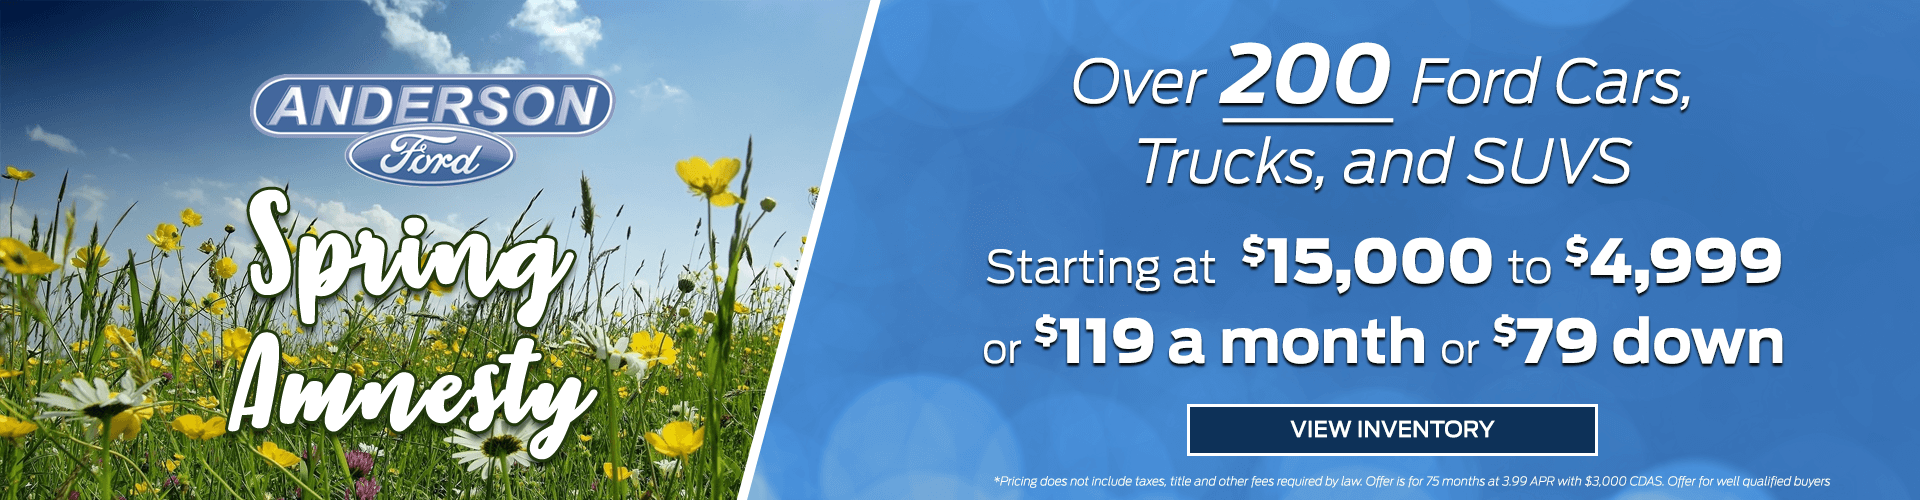 Anderson Ford Spring Amnesty